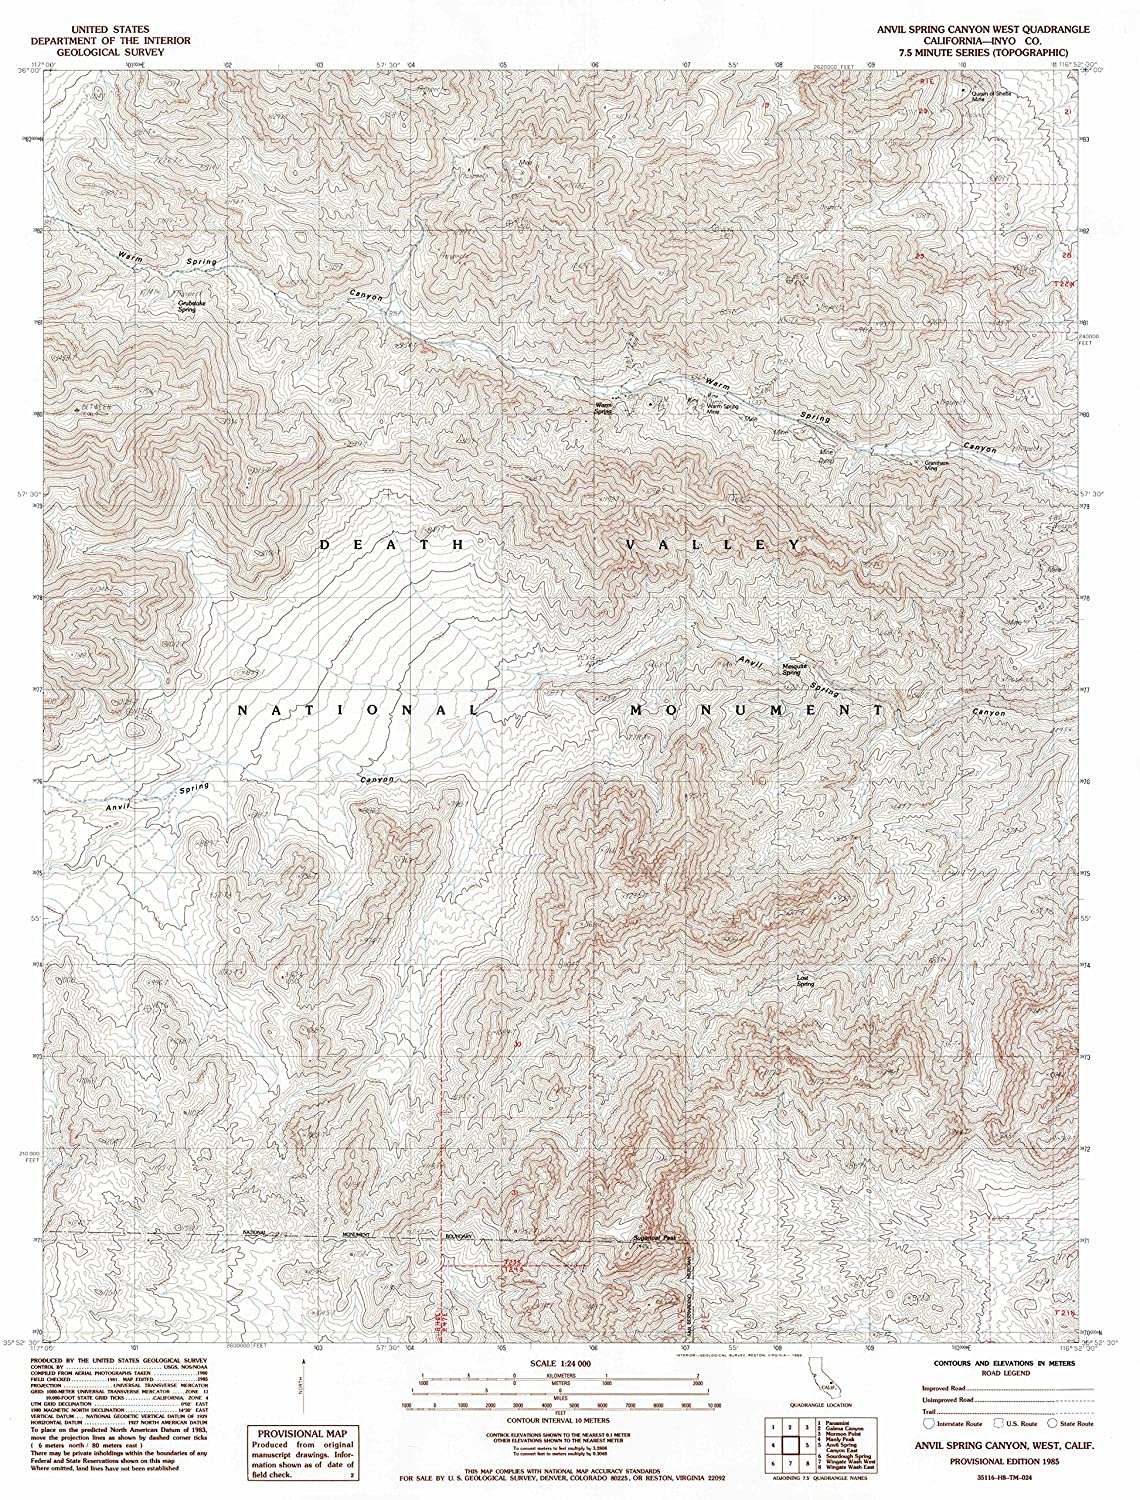 Map Print - Anvil Spring Canyon West, California (1985), 1:24000 Scale - 24